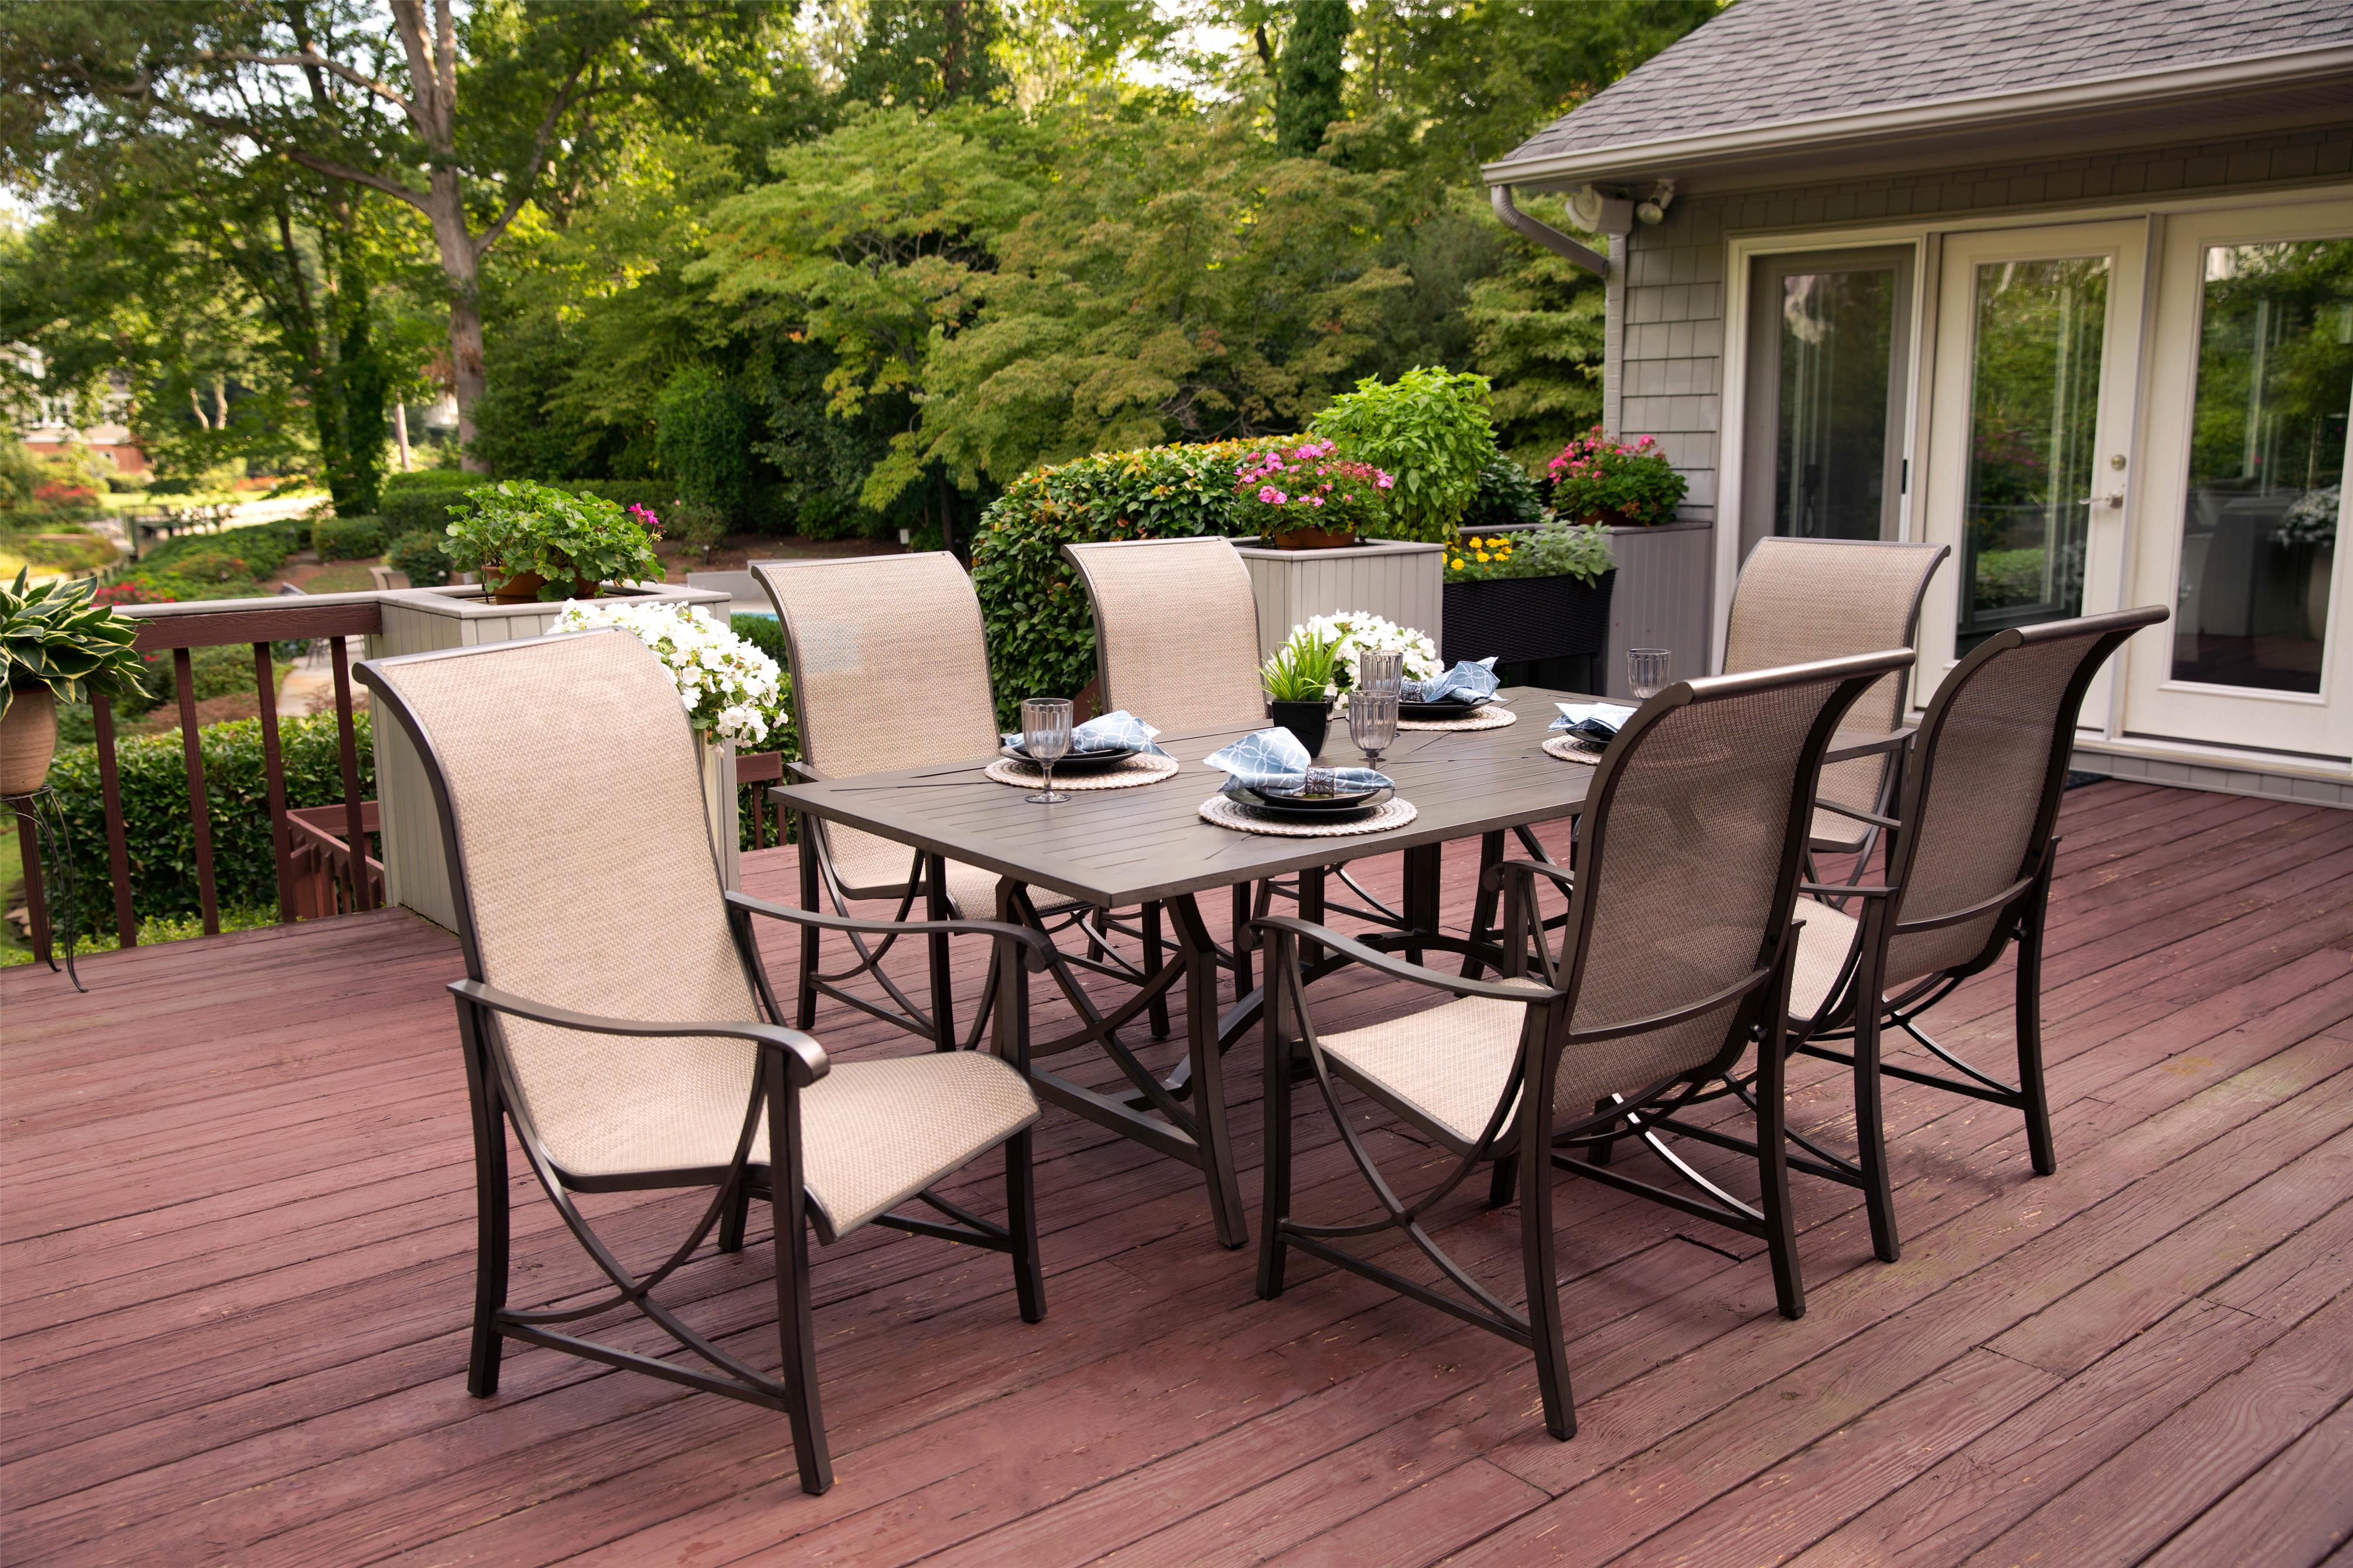 Agio Davenport 7Pc Outdoor Dining Set - Item Number: ALH42312P01+6xADH05700P01